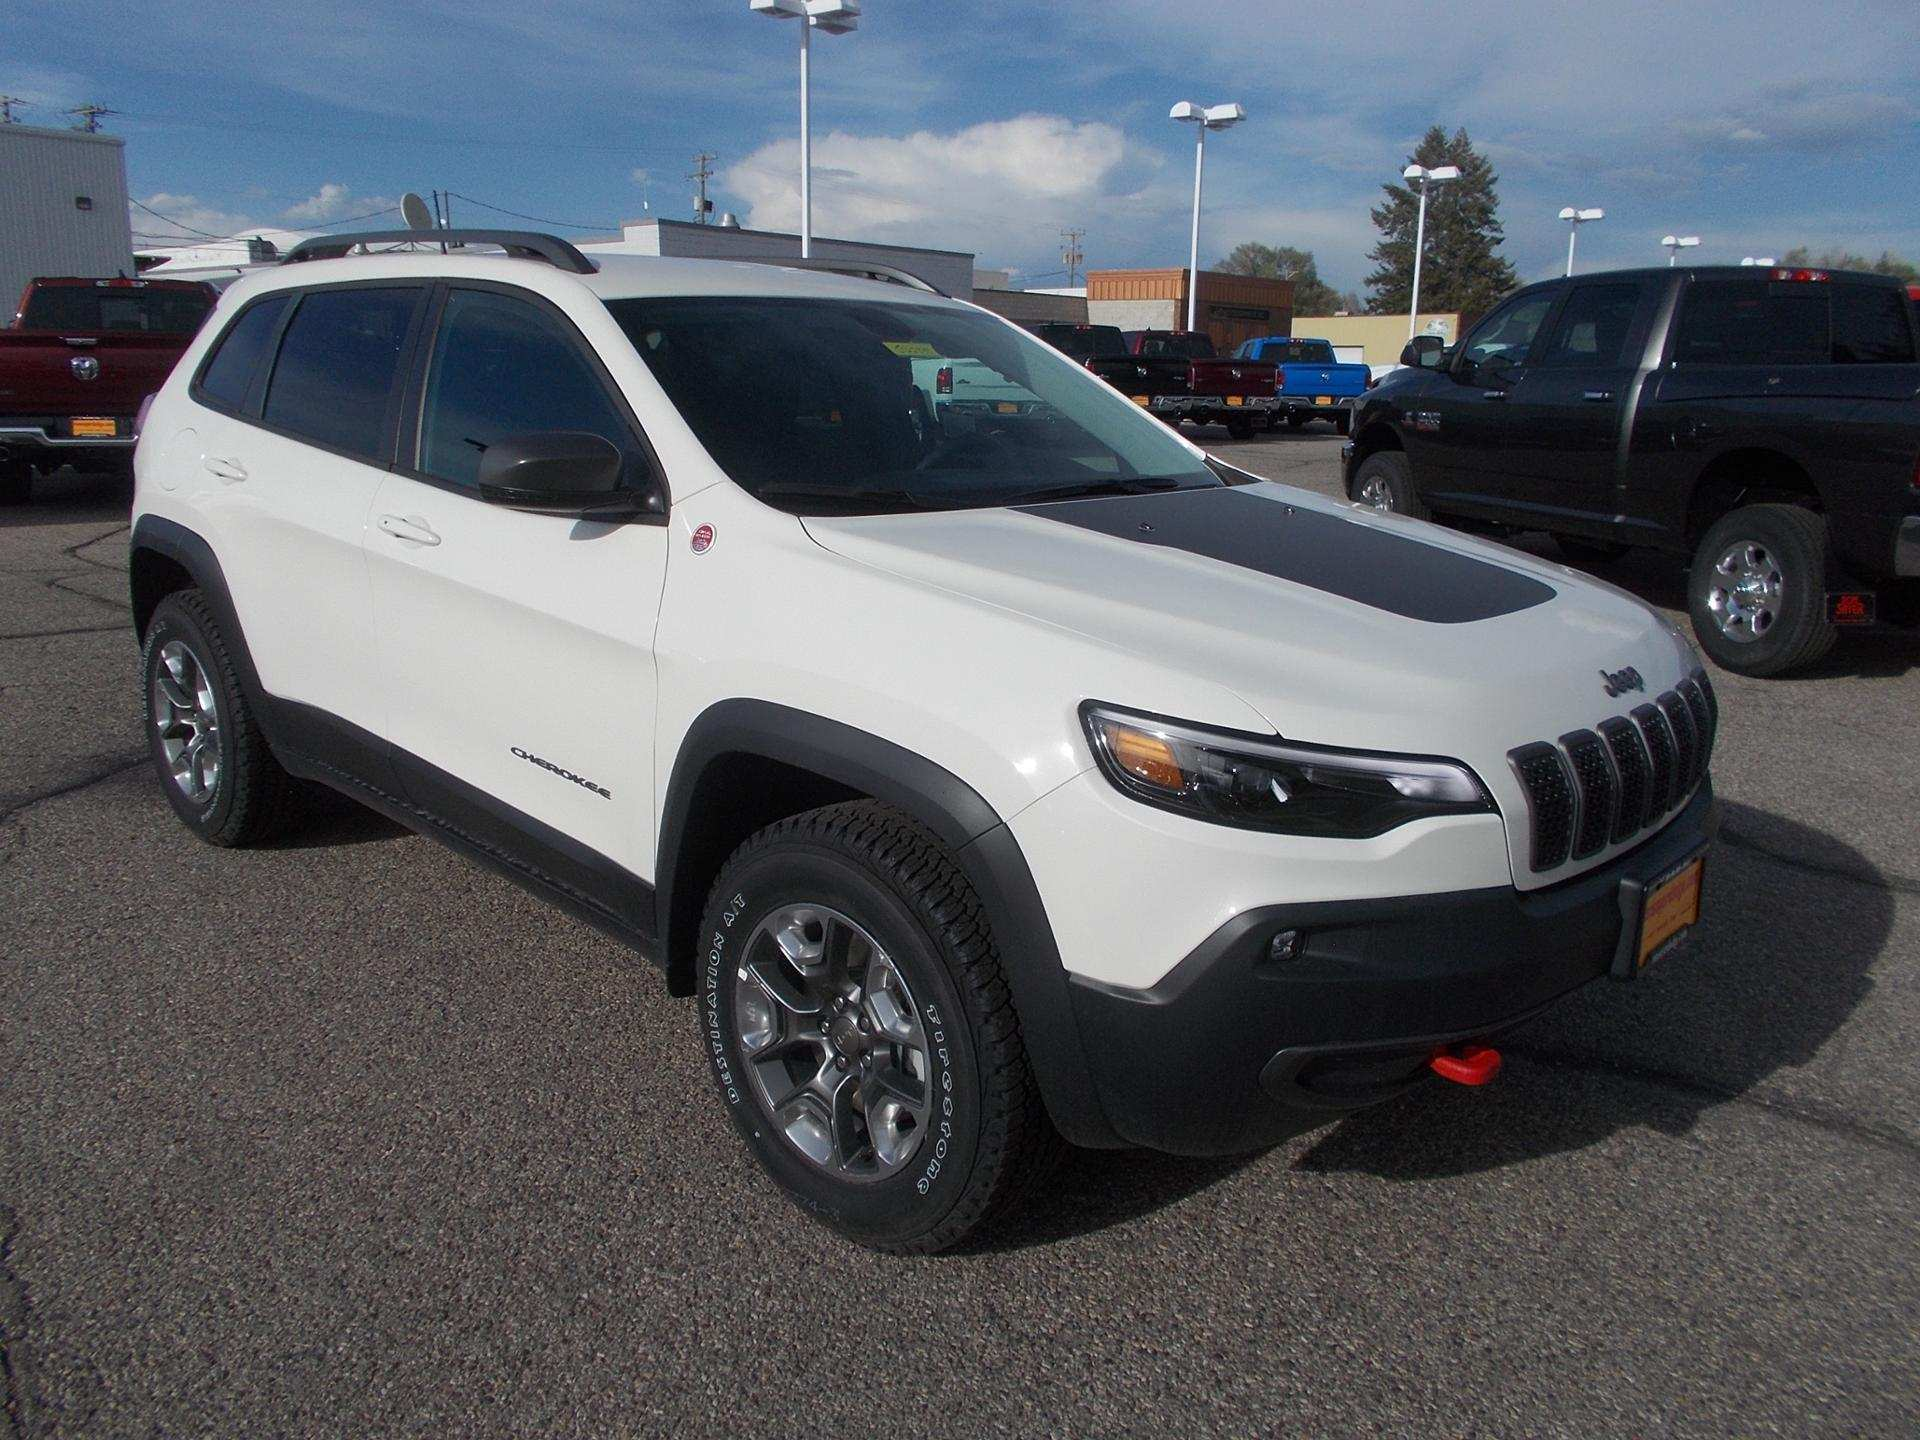 58 Concept of New 2019 Jeep New Cherokee Trailhawk Elite Spesification New Concept by New 2019 Jeep New Cherokee Trailhawk Elite Spesification